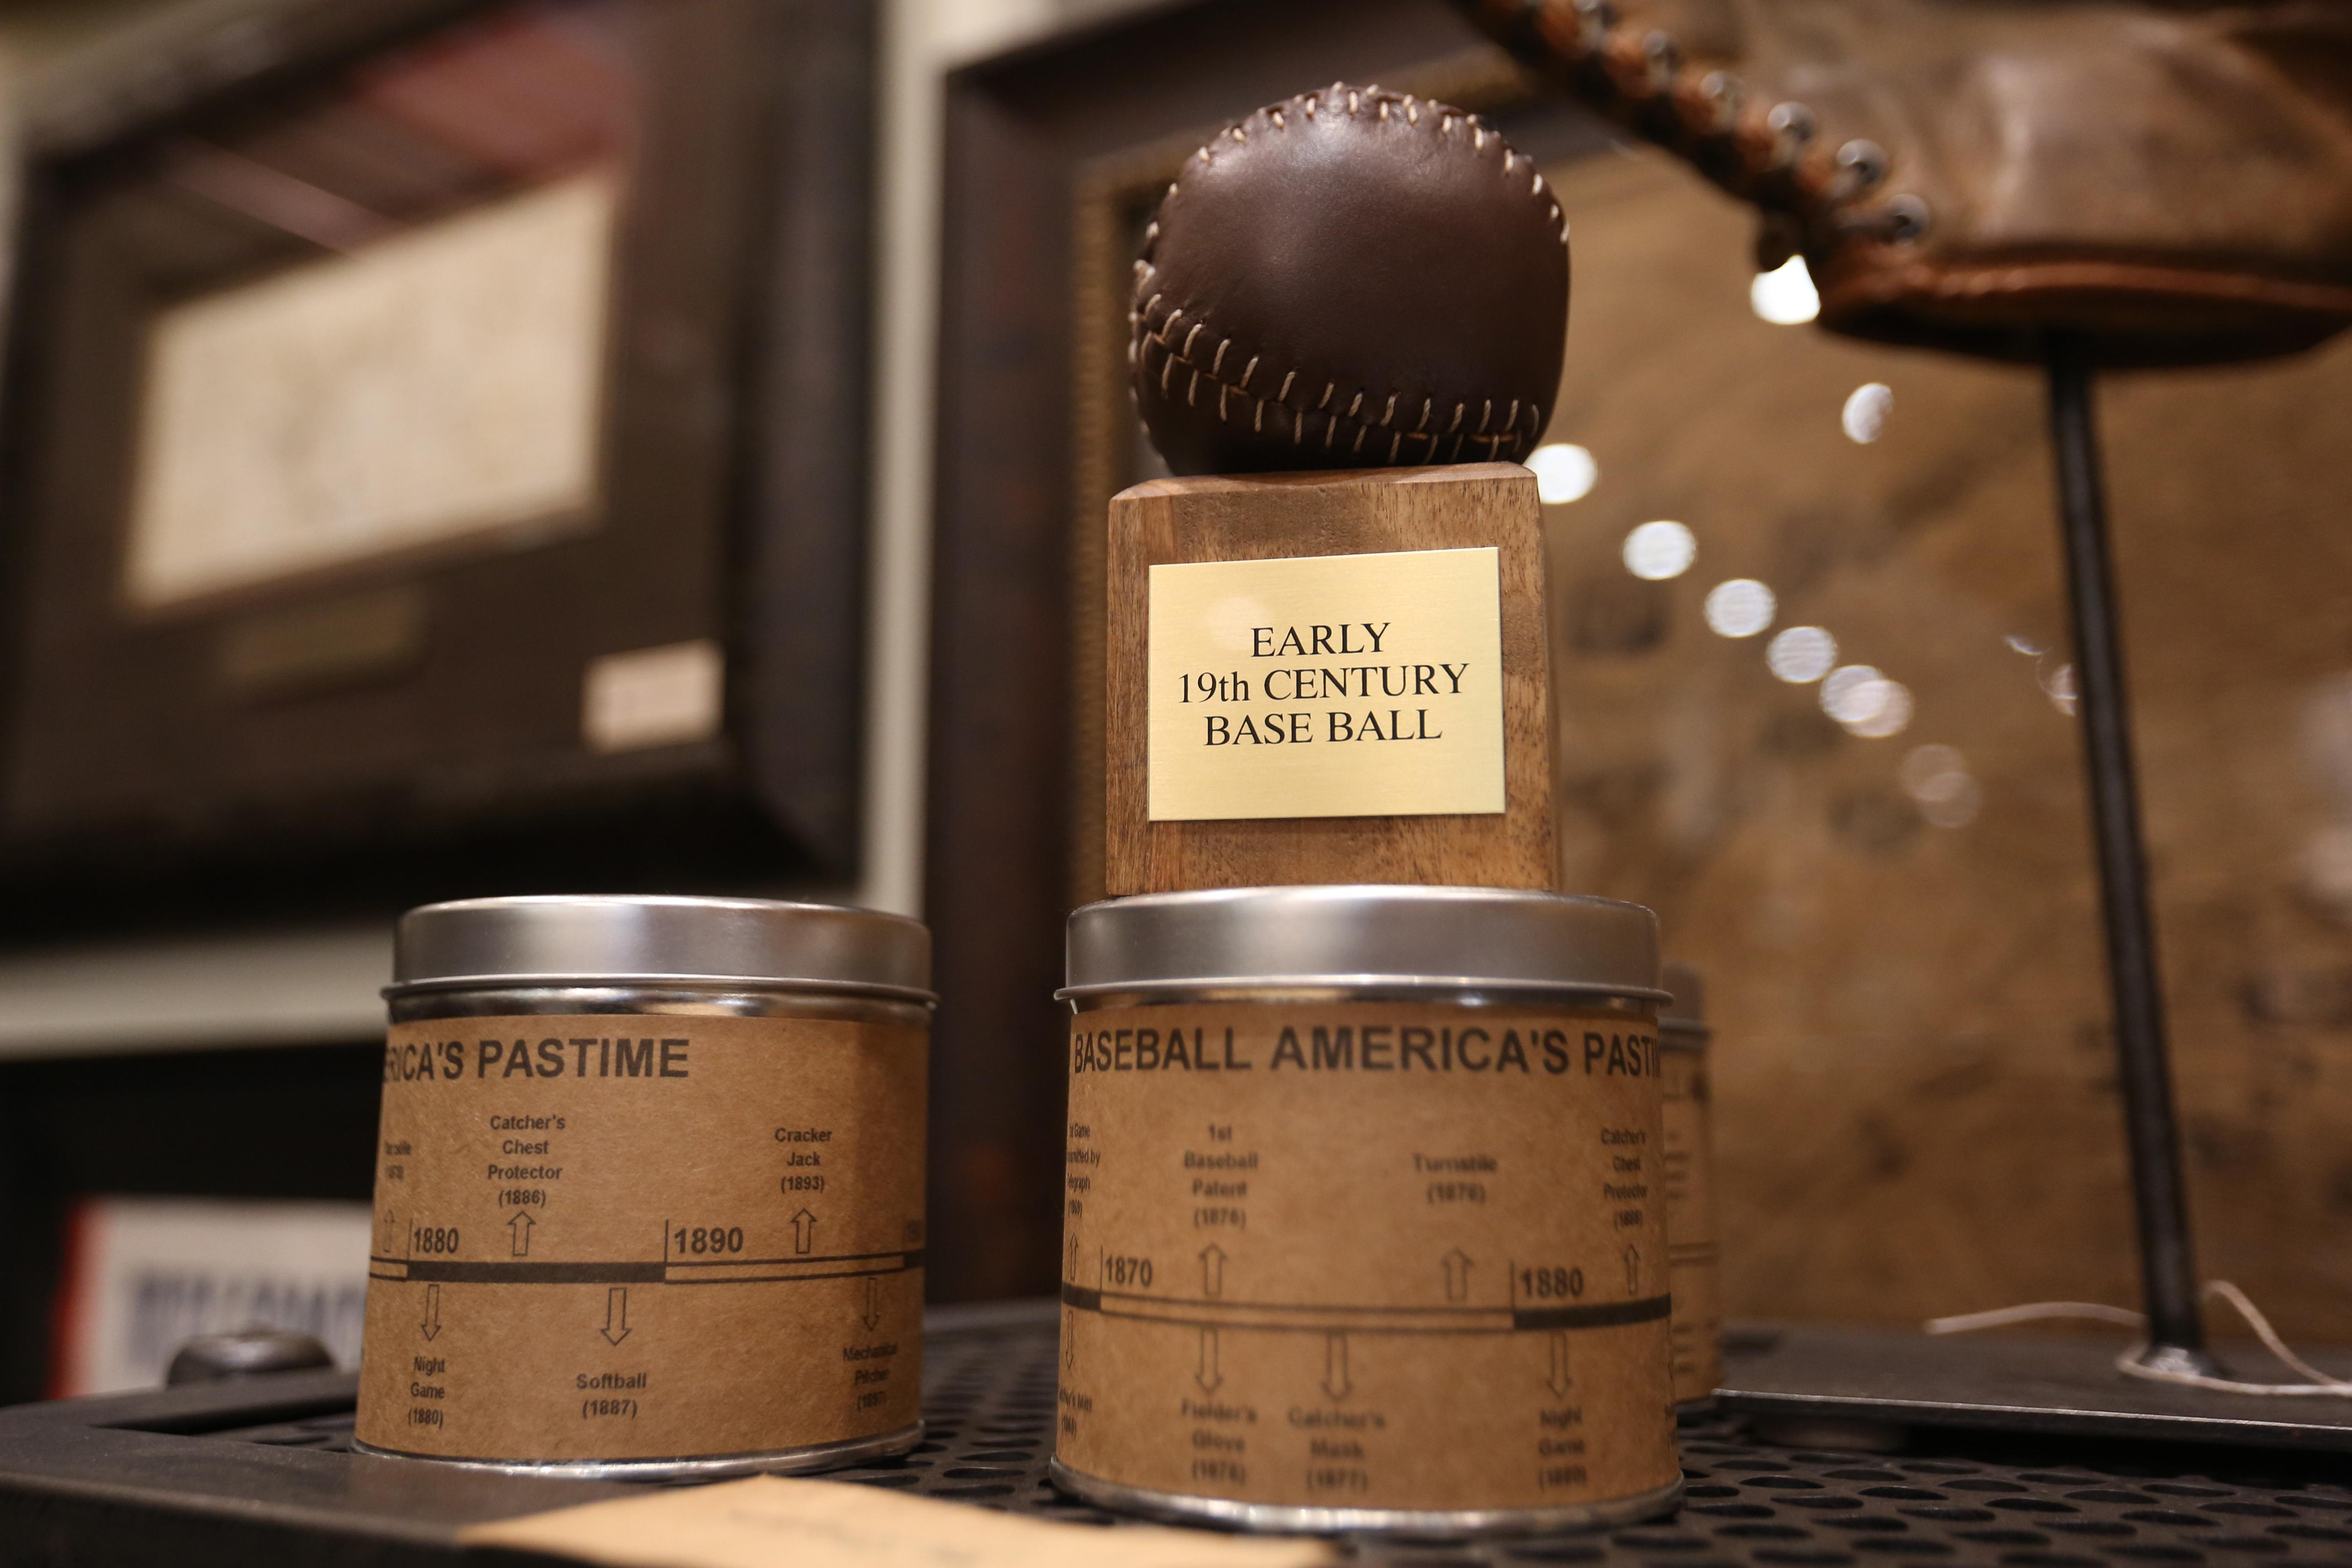 Replica 1850s baseball - $29.50,  available at The Great Republic. (Amanda Andrade-Rhoades/DC Refined)